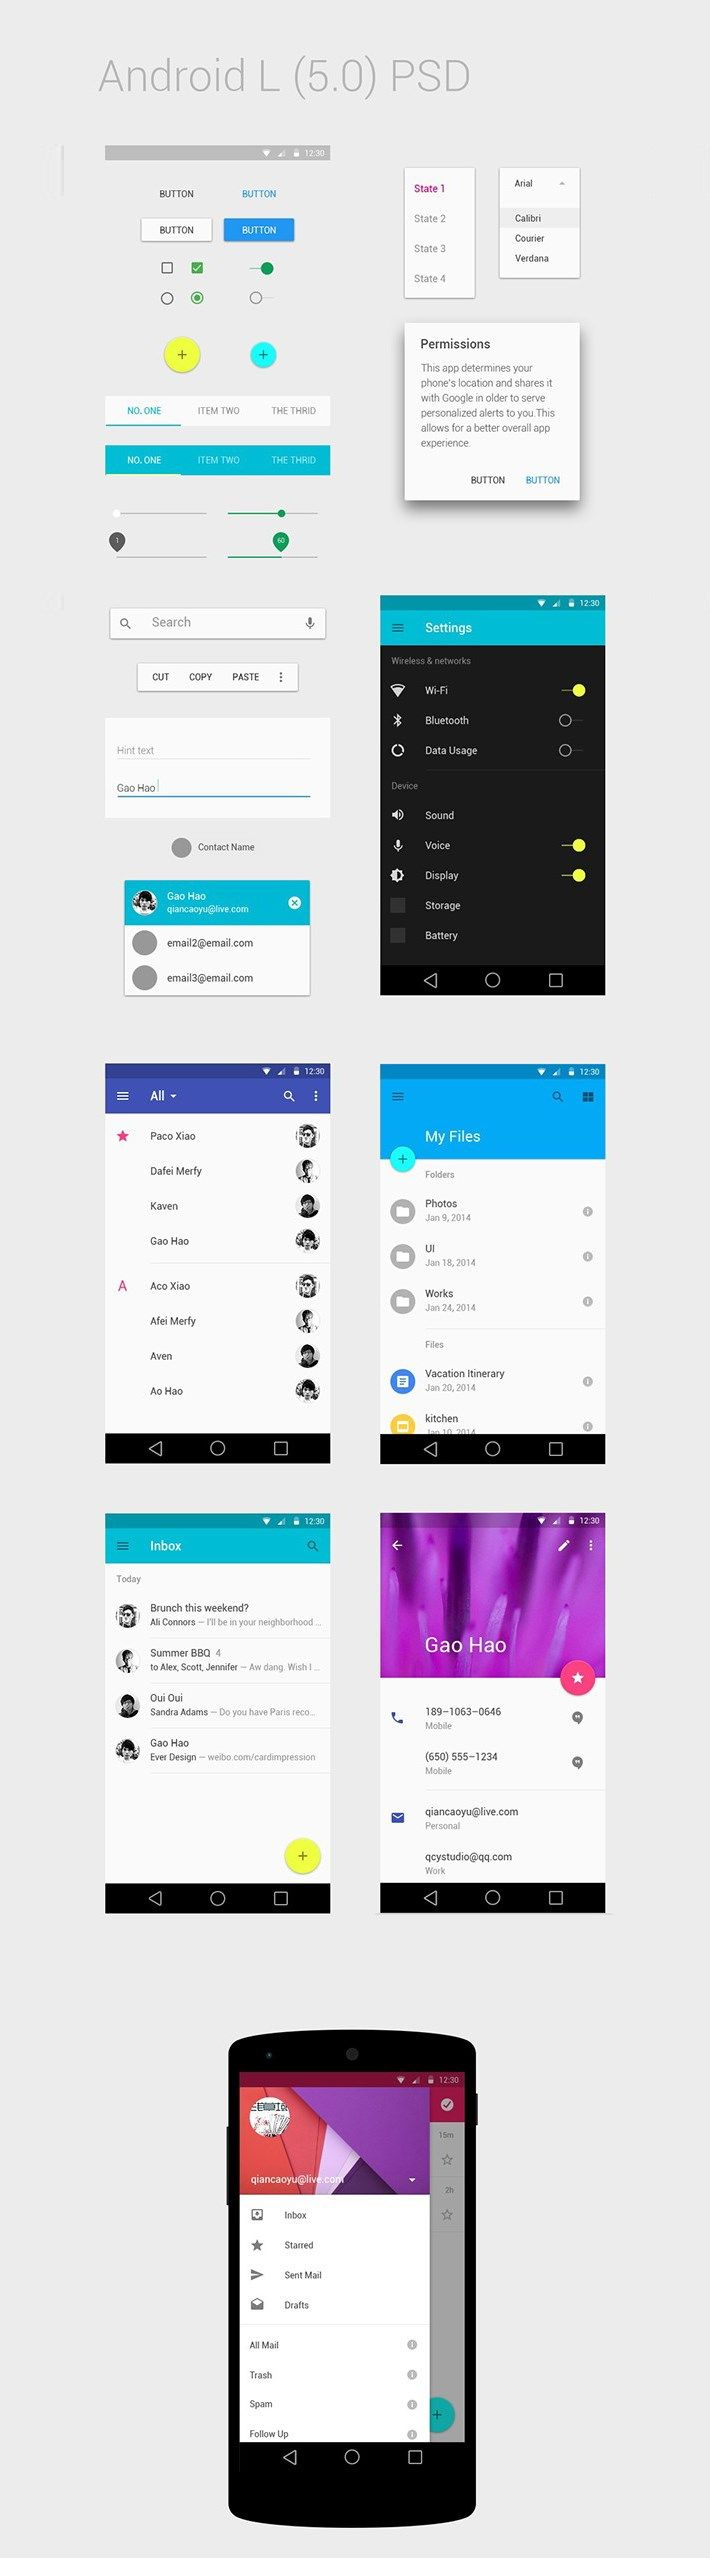 10 GUI Templates for Android